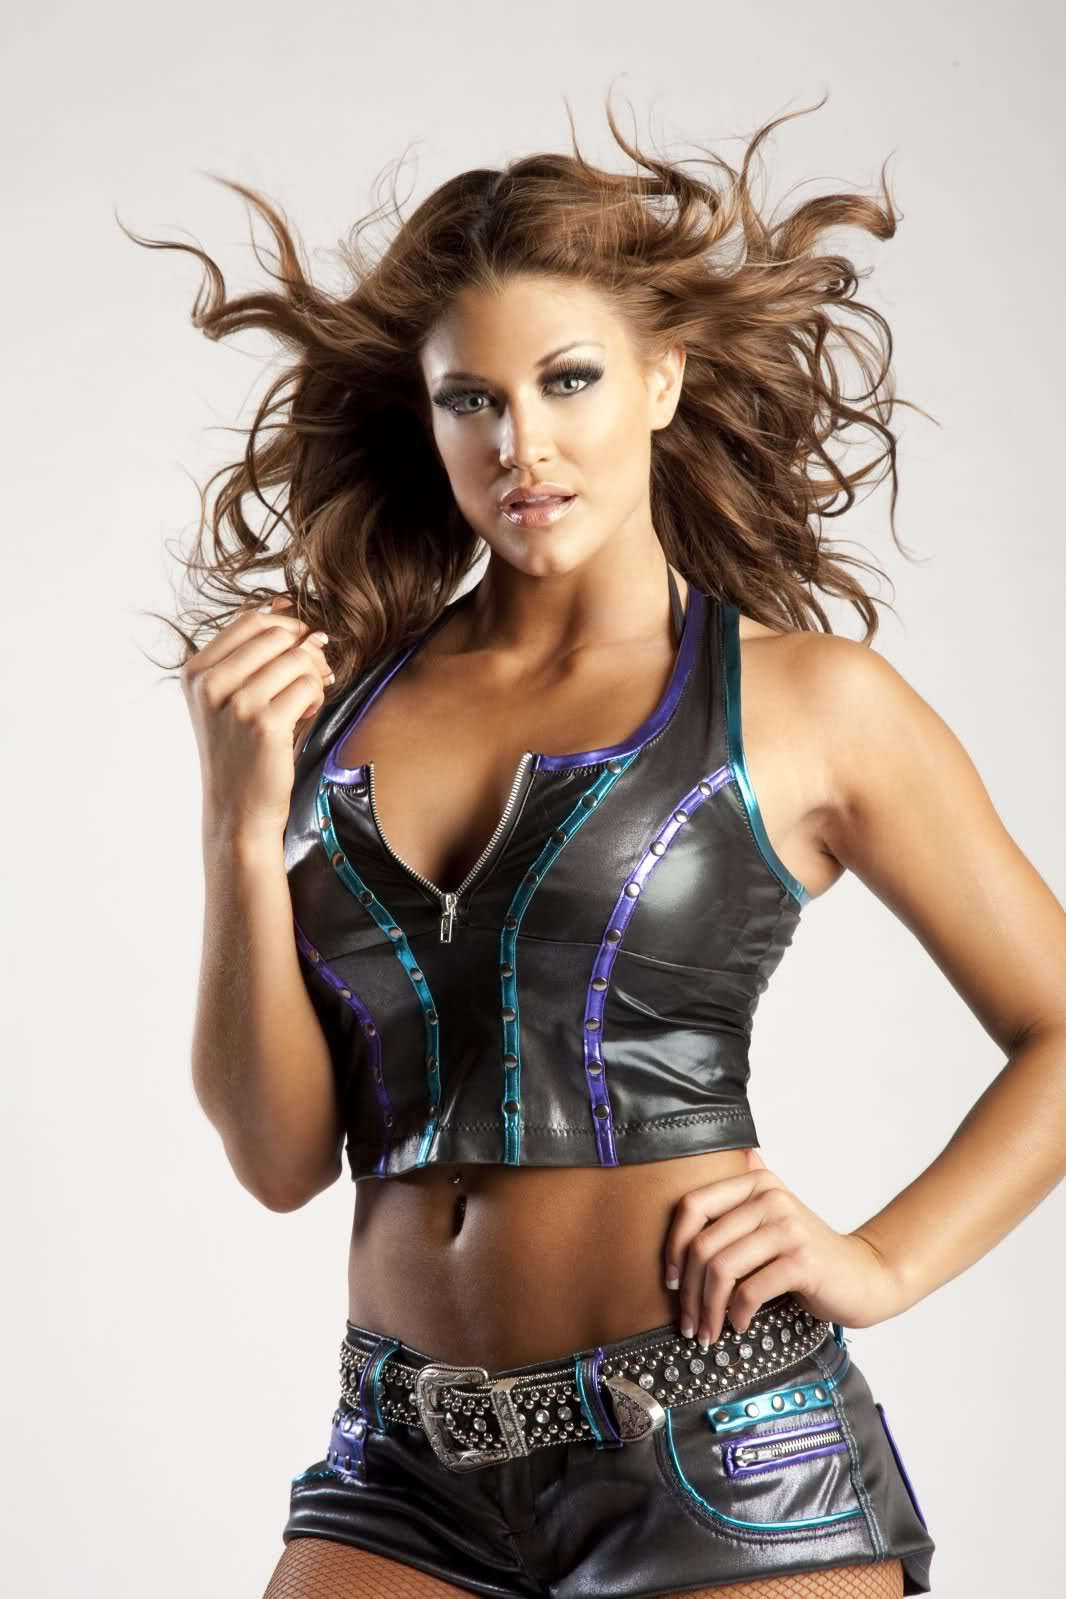 No 8 Hottest Divas In Wwe History Eve Torres